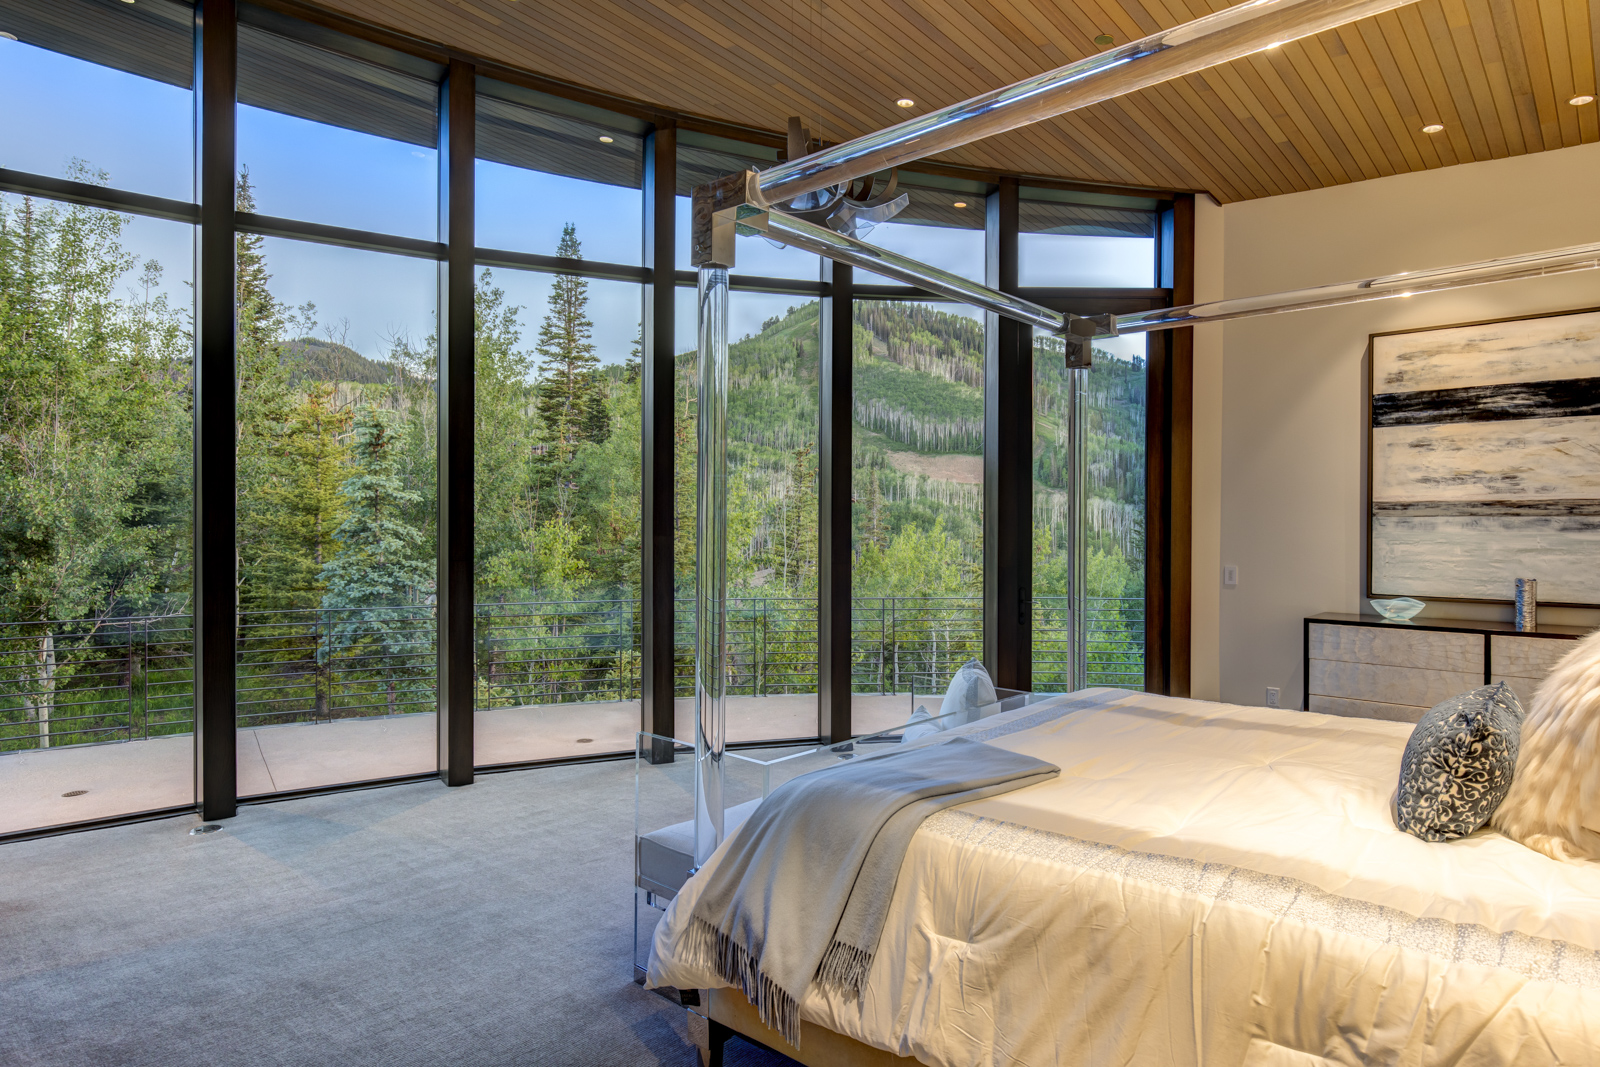 217-White-Pine-Canyon-Road-Ski-In-Ski-Out-Park-City-Real-Estate-Daimon-Bushi-Christies-Luxury-Portfolio-16